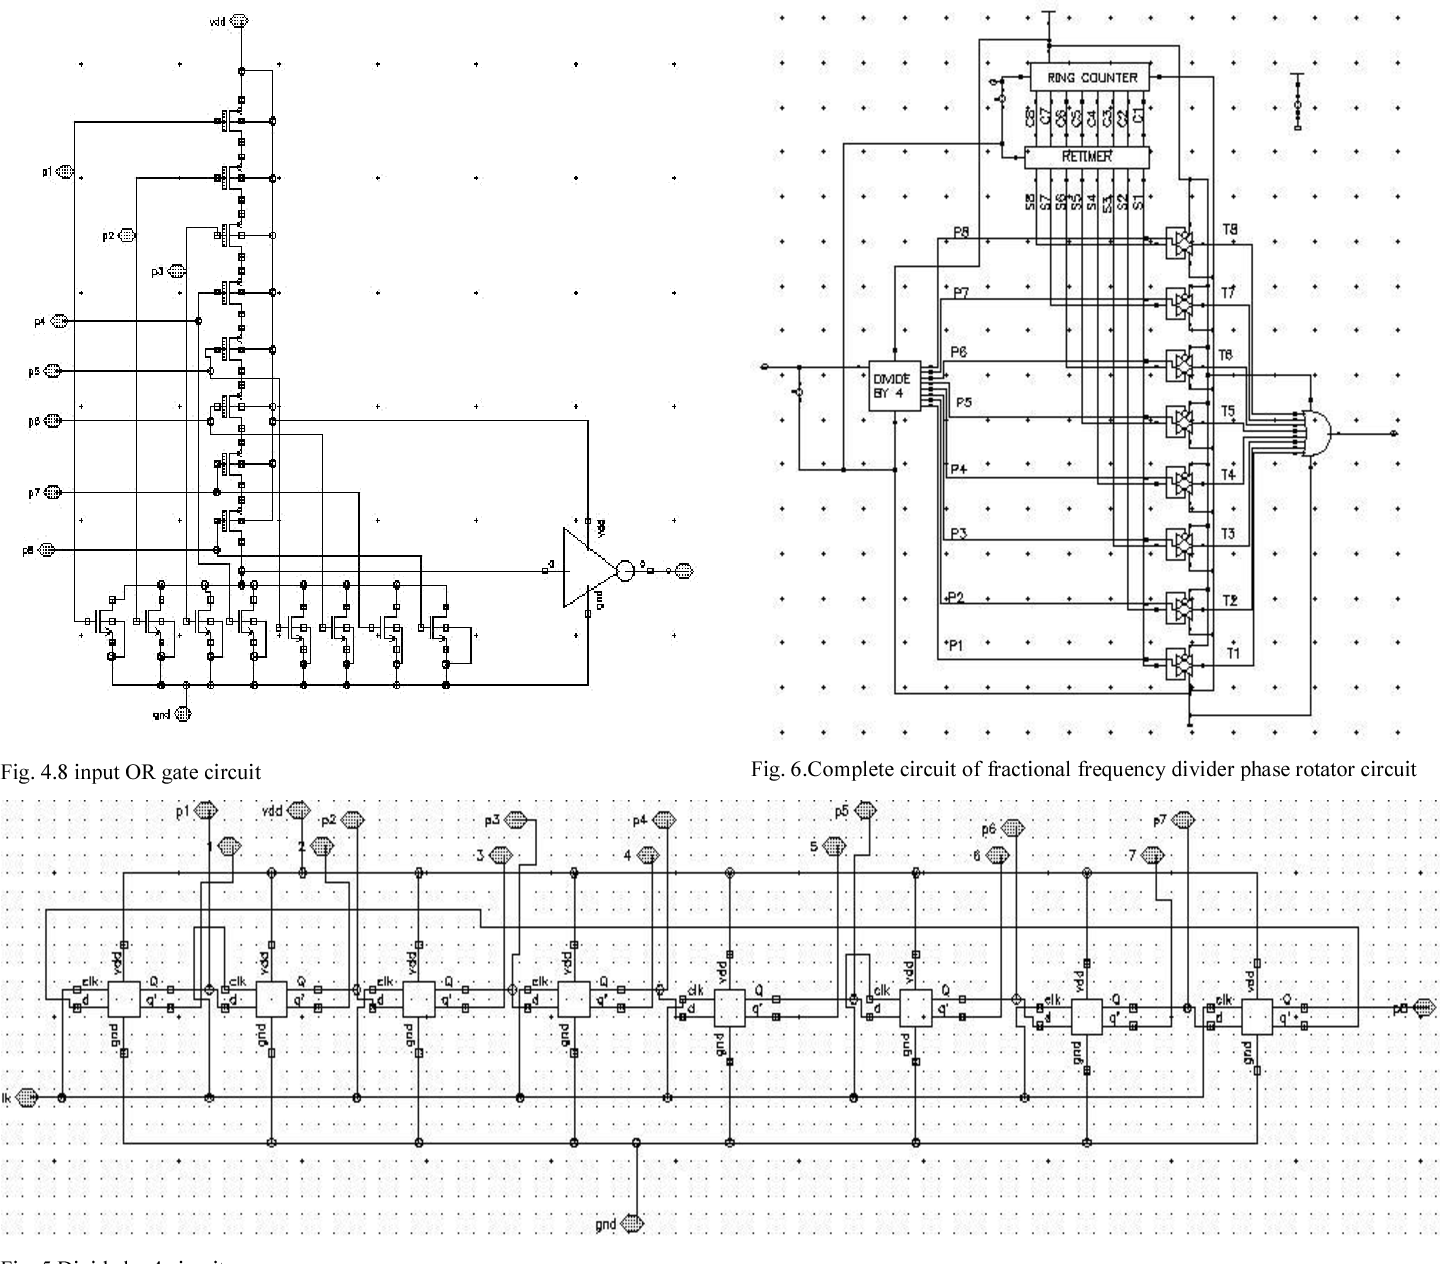 Fig. 6.Complete circuit of fractional frequency divider phase rotator circuit